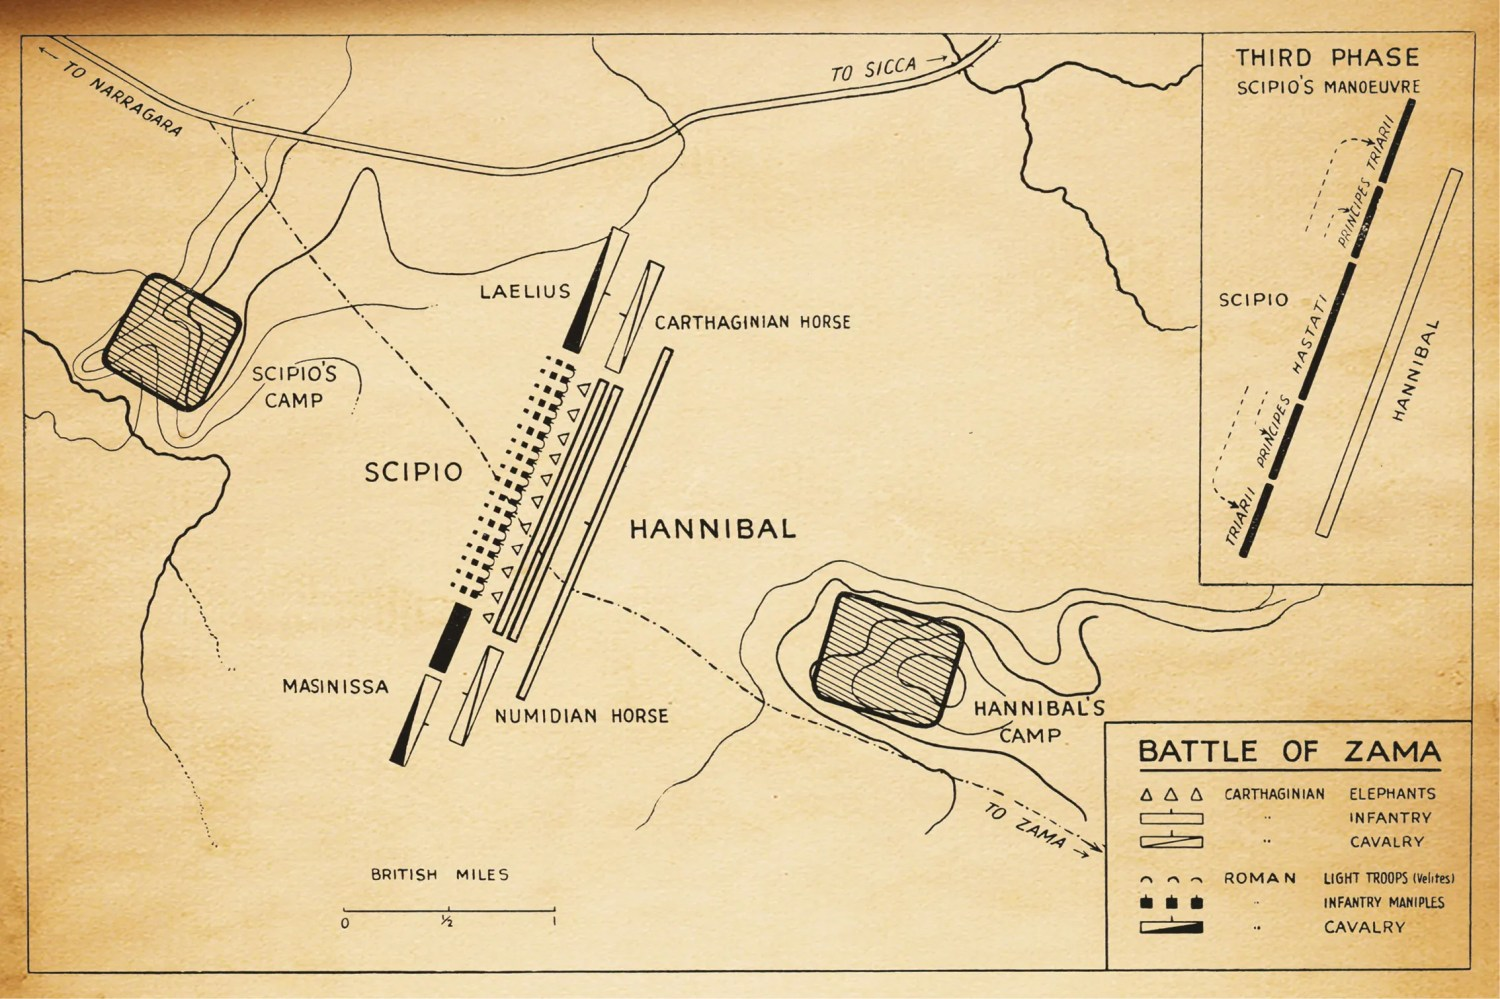 above Plan of the Battle of Zama, 202 BC, showing the initial deployments and (inset) the final phase.